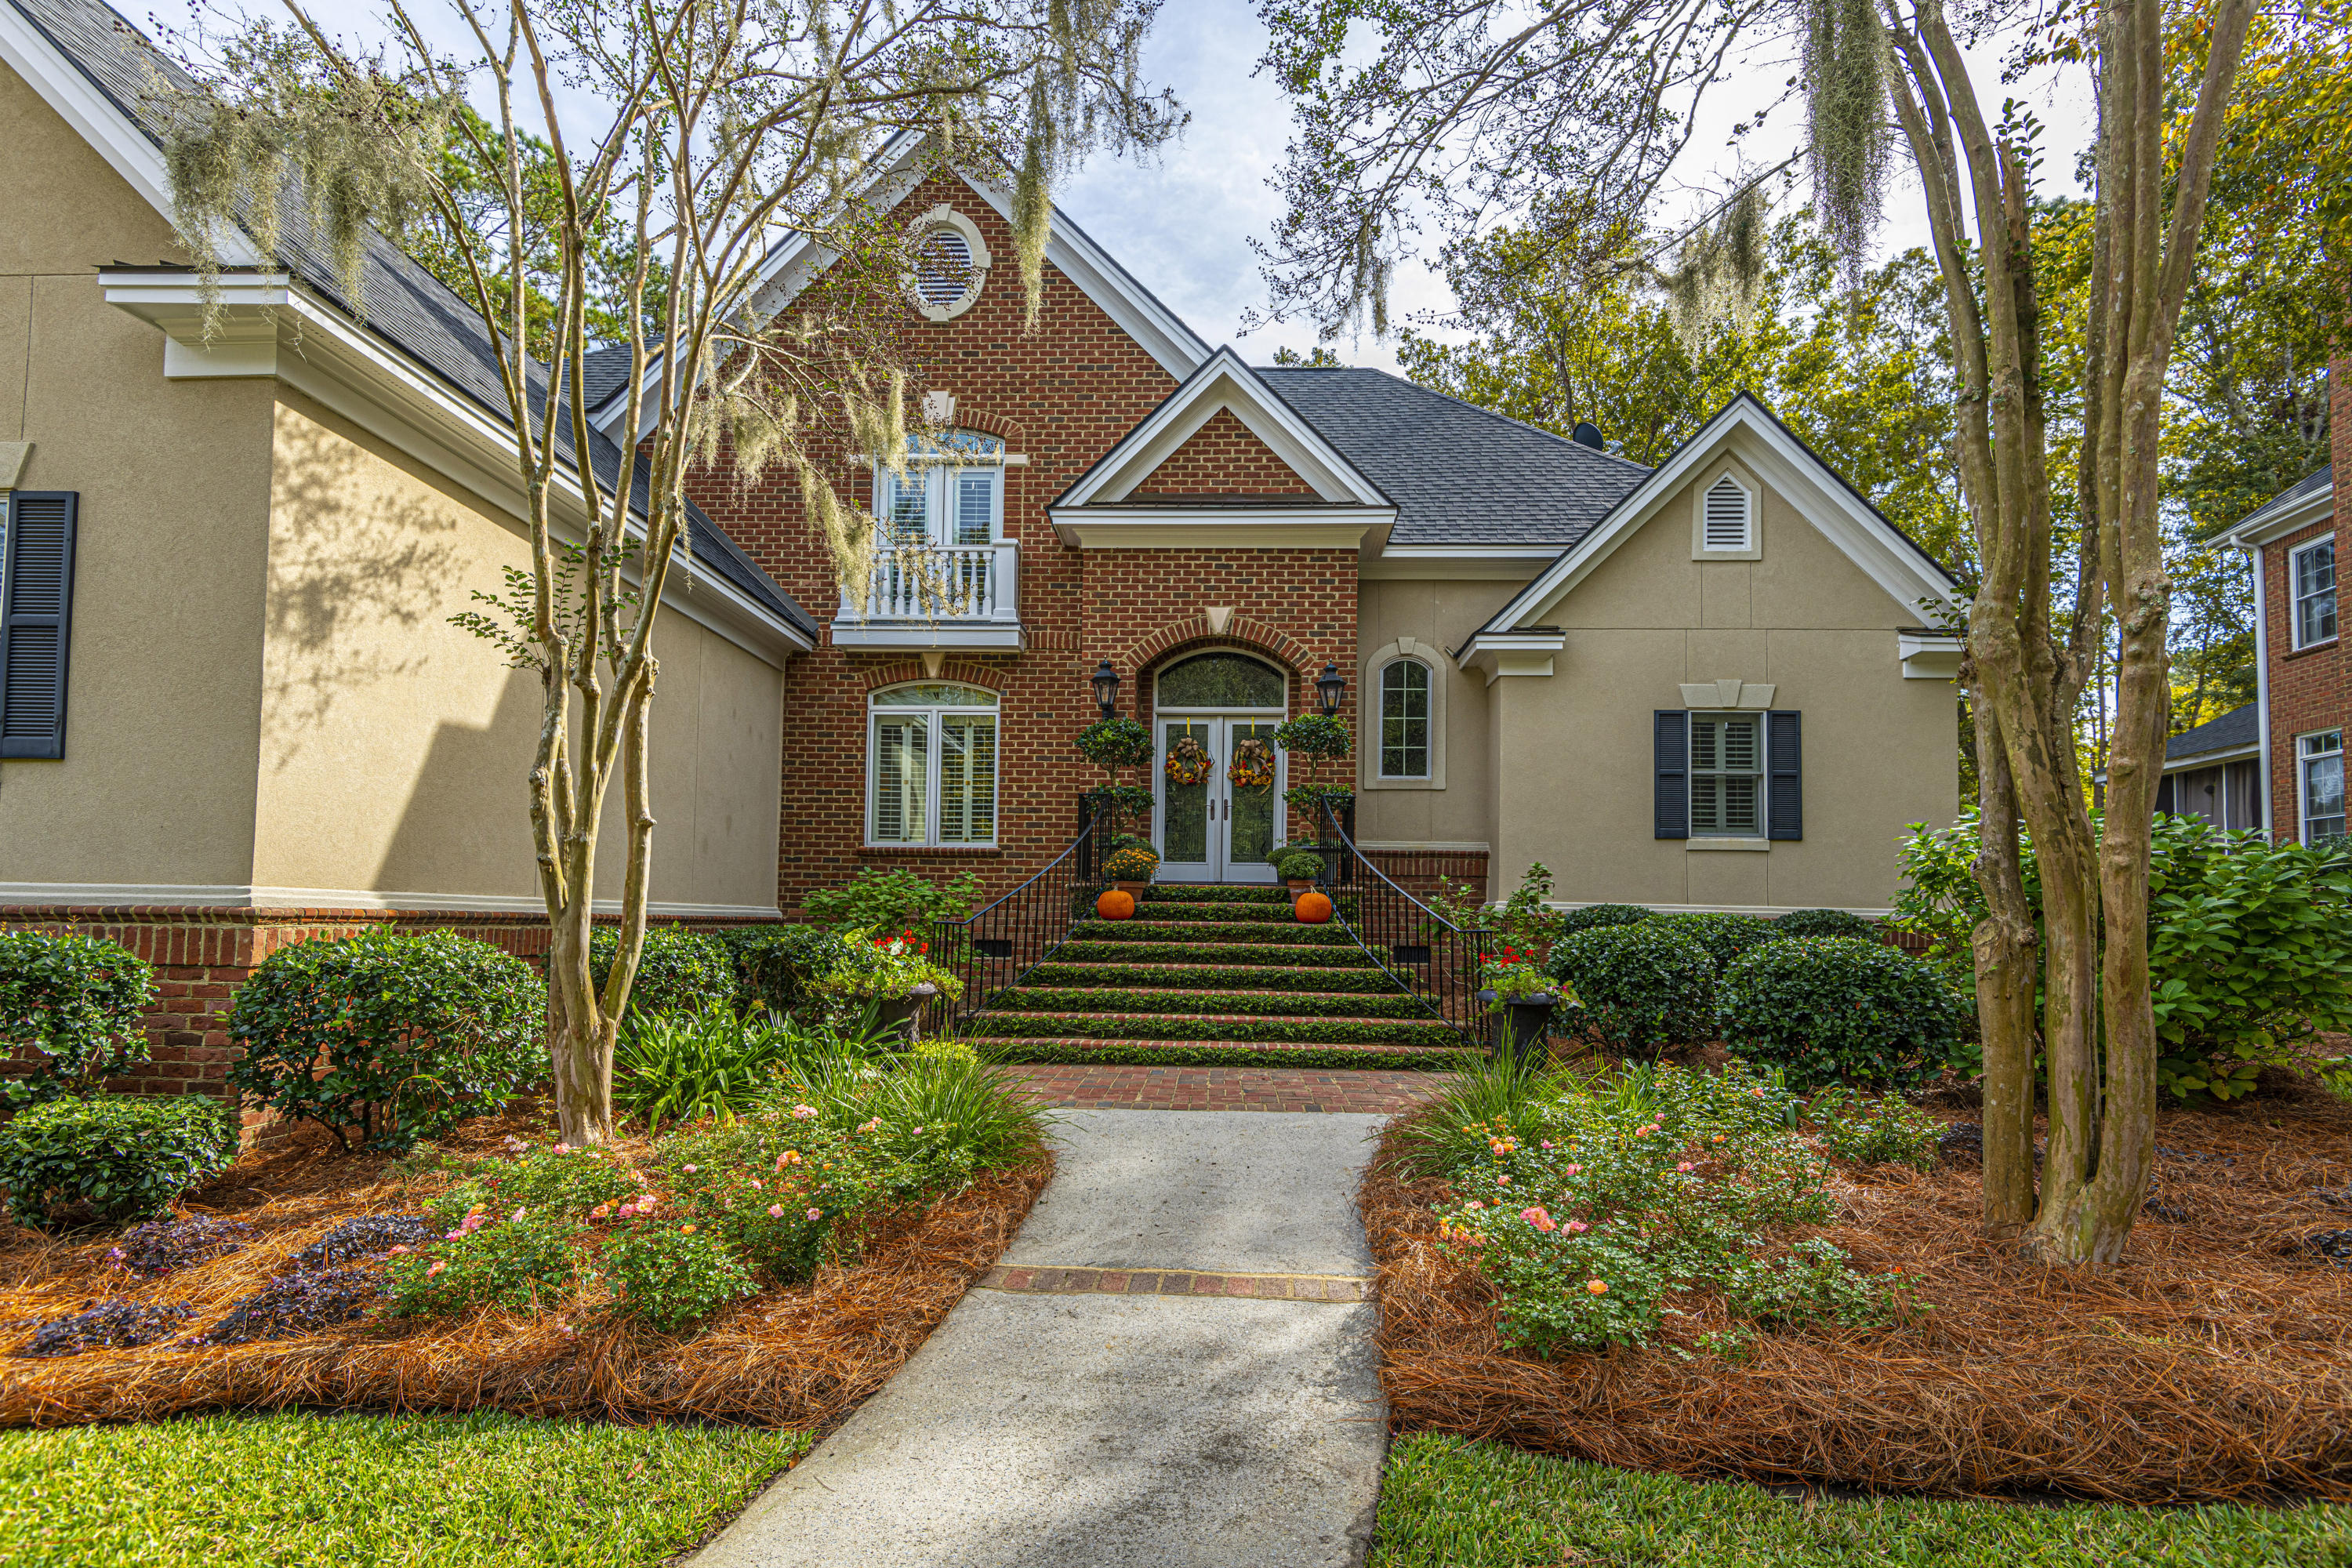 Coosaw Creek Country Club Homes For Sale - 8642 Fairway Woods, North Charleston, SC - 35